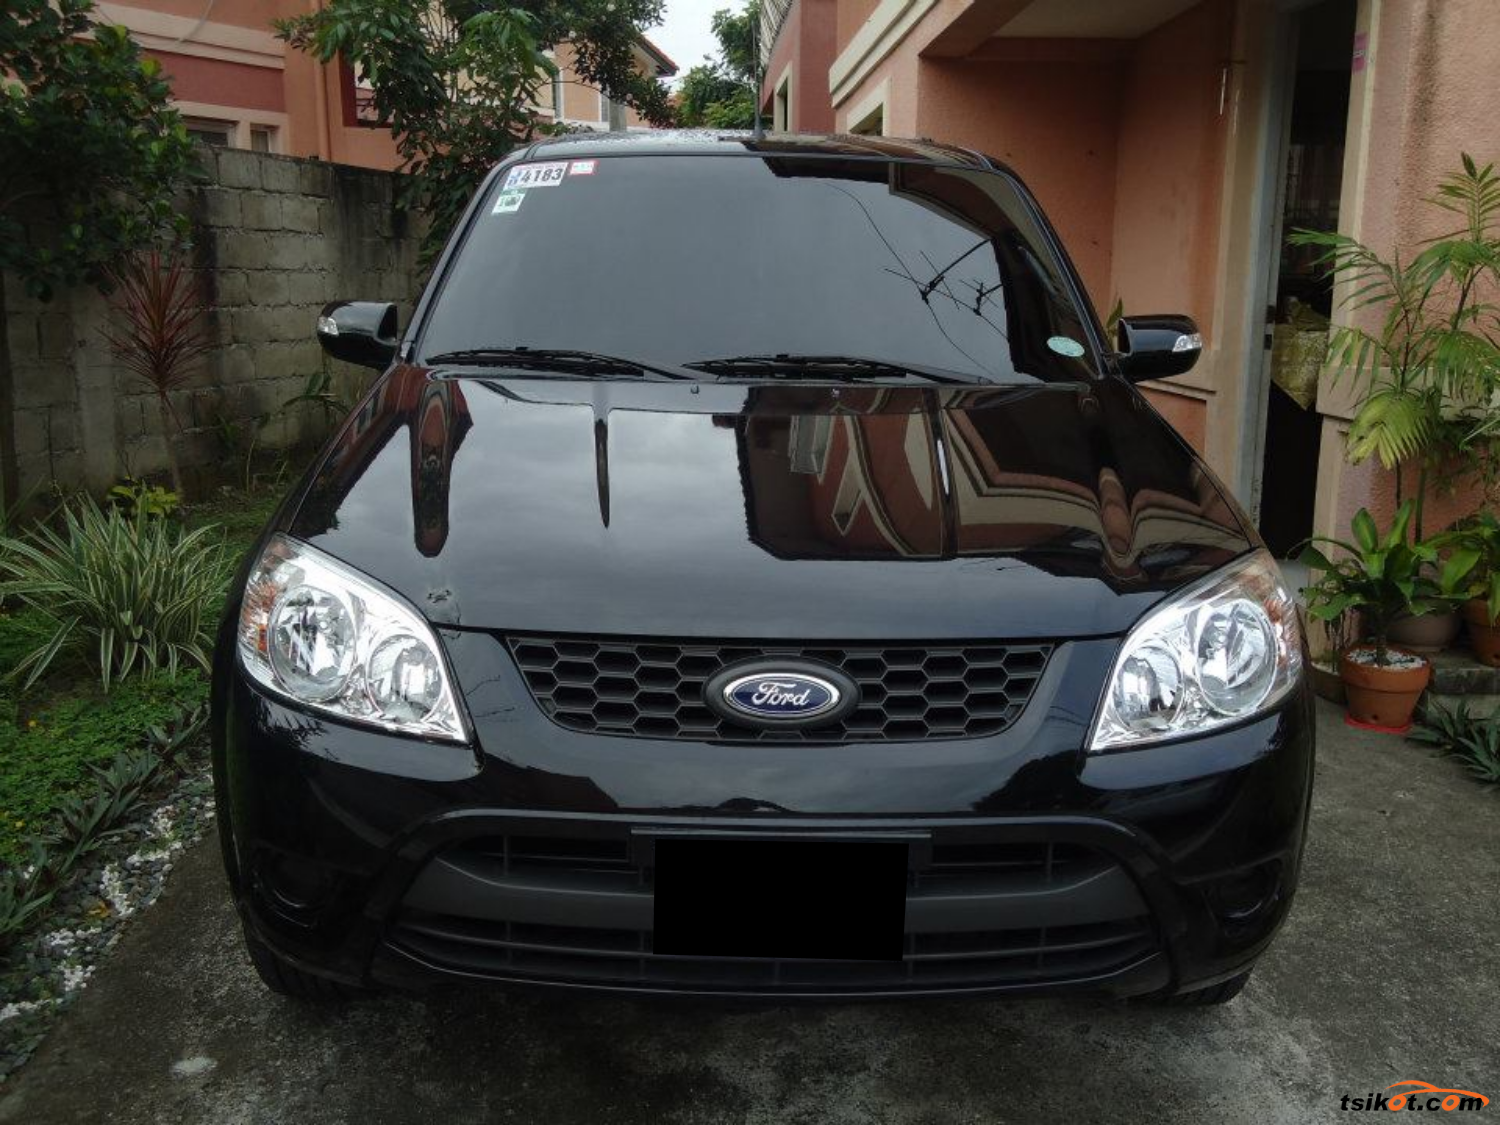 Ford Escape 2012 Car for Sale Calabarzon Philippines